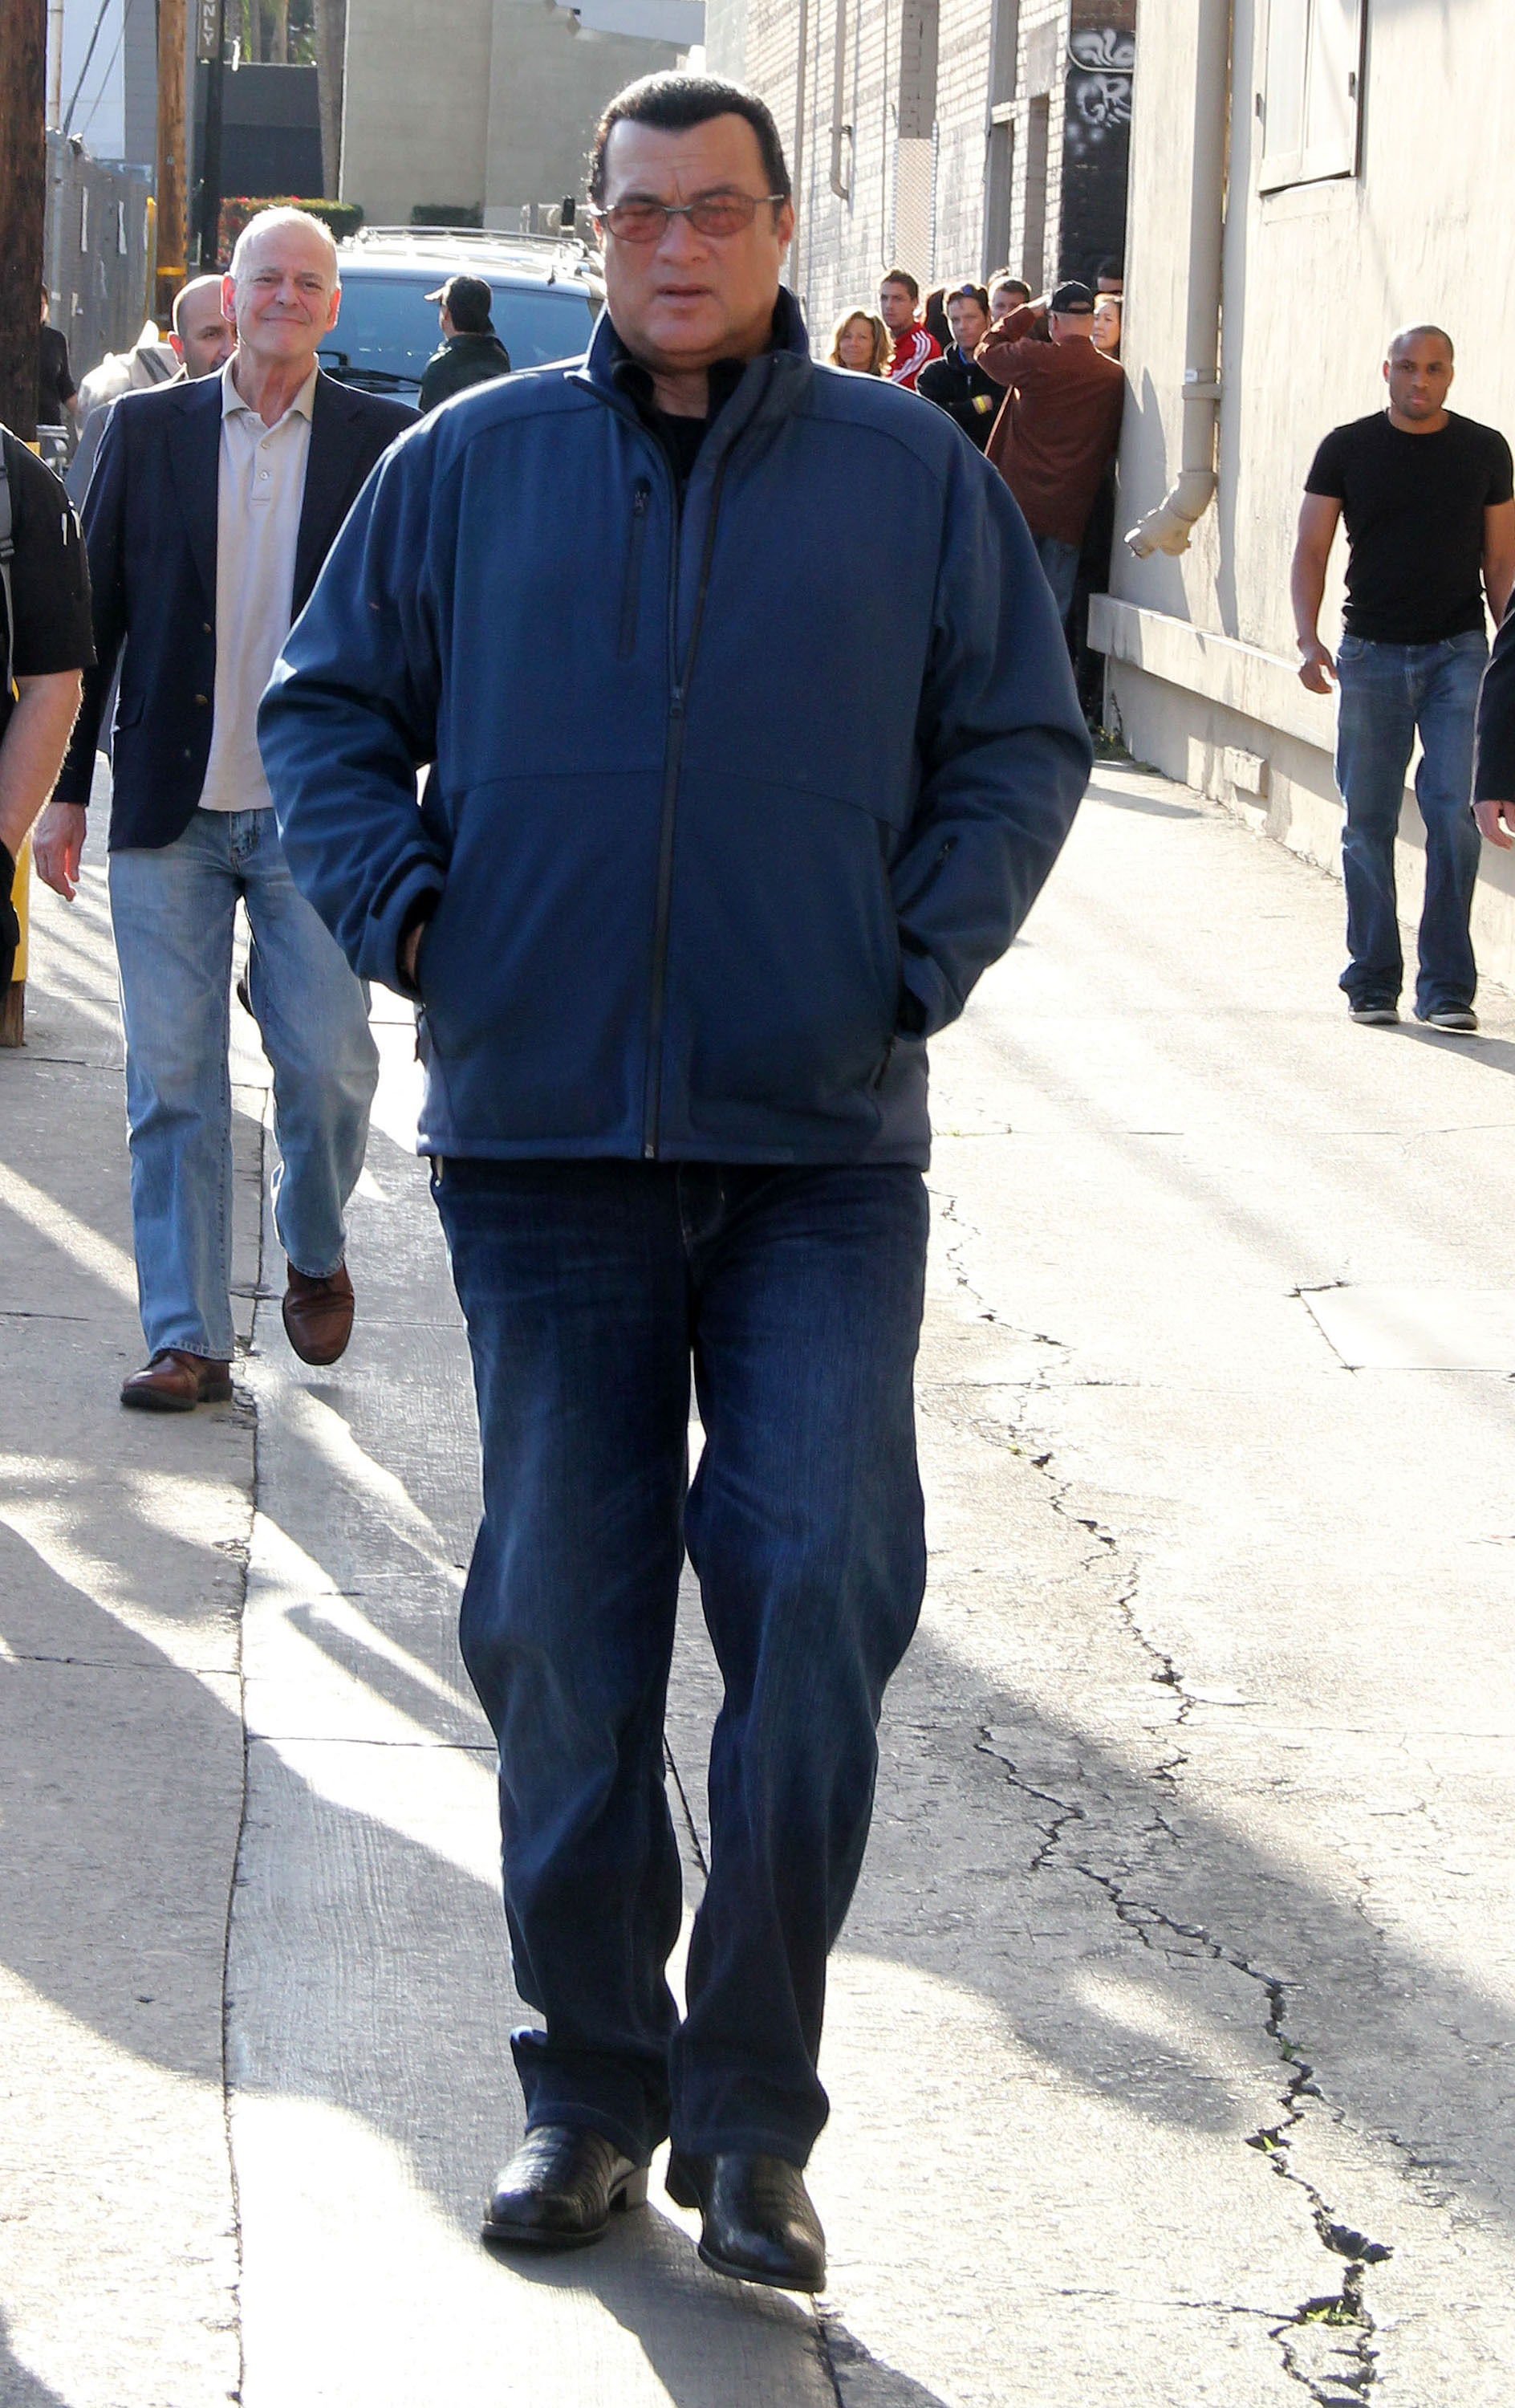 Steven SeagalCelebrities outside the 'Jimmy Kimmel Live!' studiosLos Angeles, California - 26.03.12Featuring: Steven SeagalWhere: United StatesWhen: 26 Mar 2012Credit: WENN